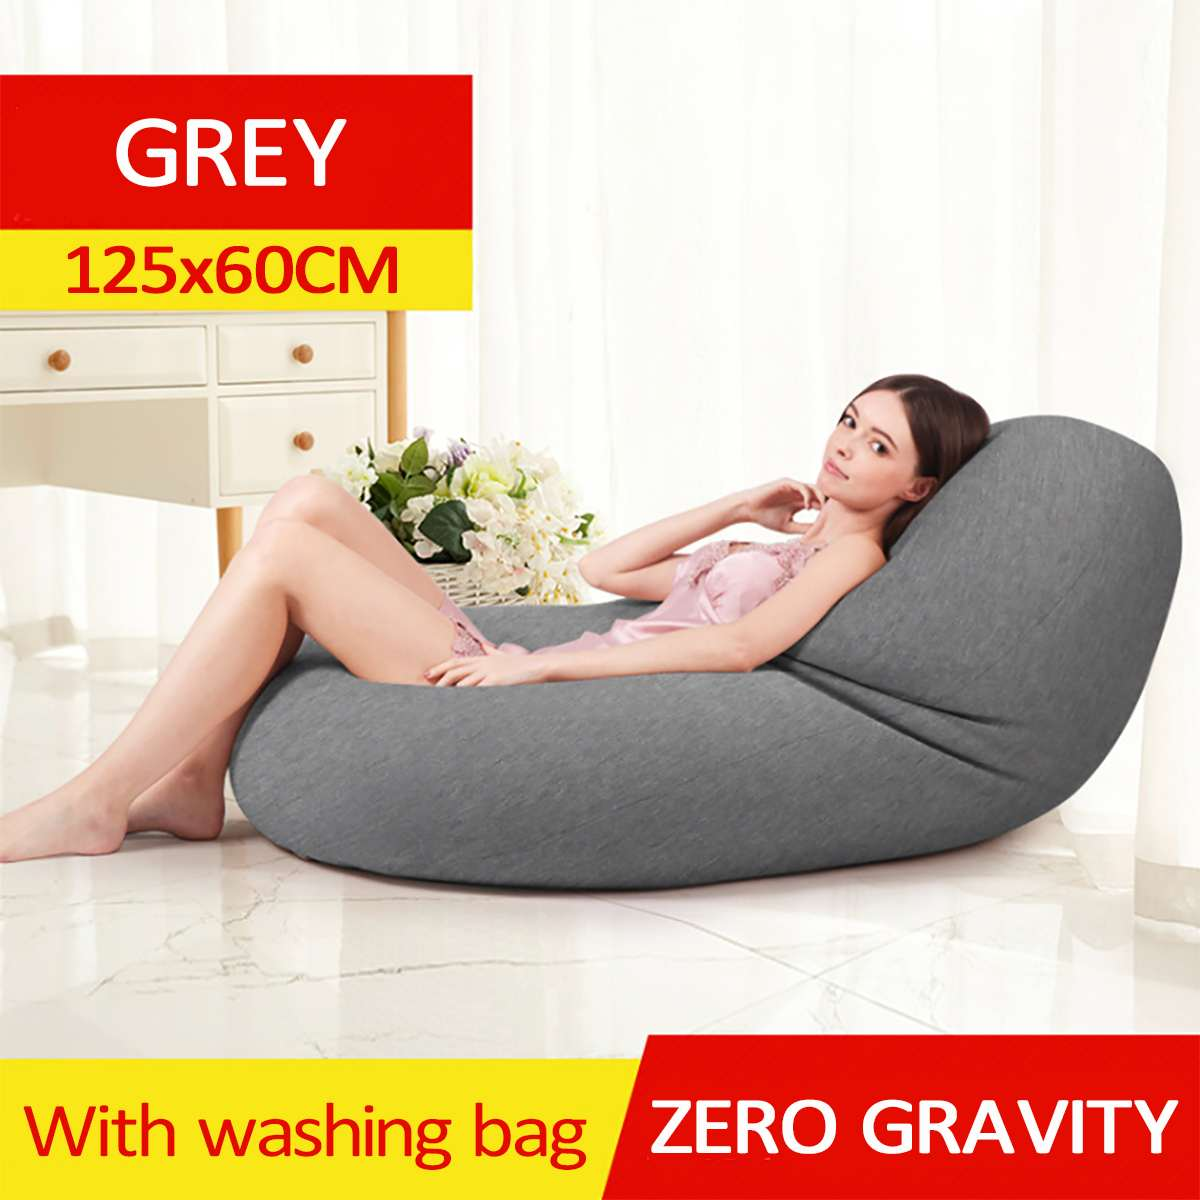 Waterproof Lazy BeanBag Sofas Cover Chairs without Filler Linen Cloth Lounger Seat Bean Bag Pouf Puff Couch Tatami Living RoomWaterproof Lazy BeanBag Sofas Cover Chairs without Filler Linen Cloth Lounger Seat Bean Bag Pouf Puff Couch Tatami Living Room